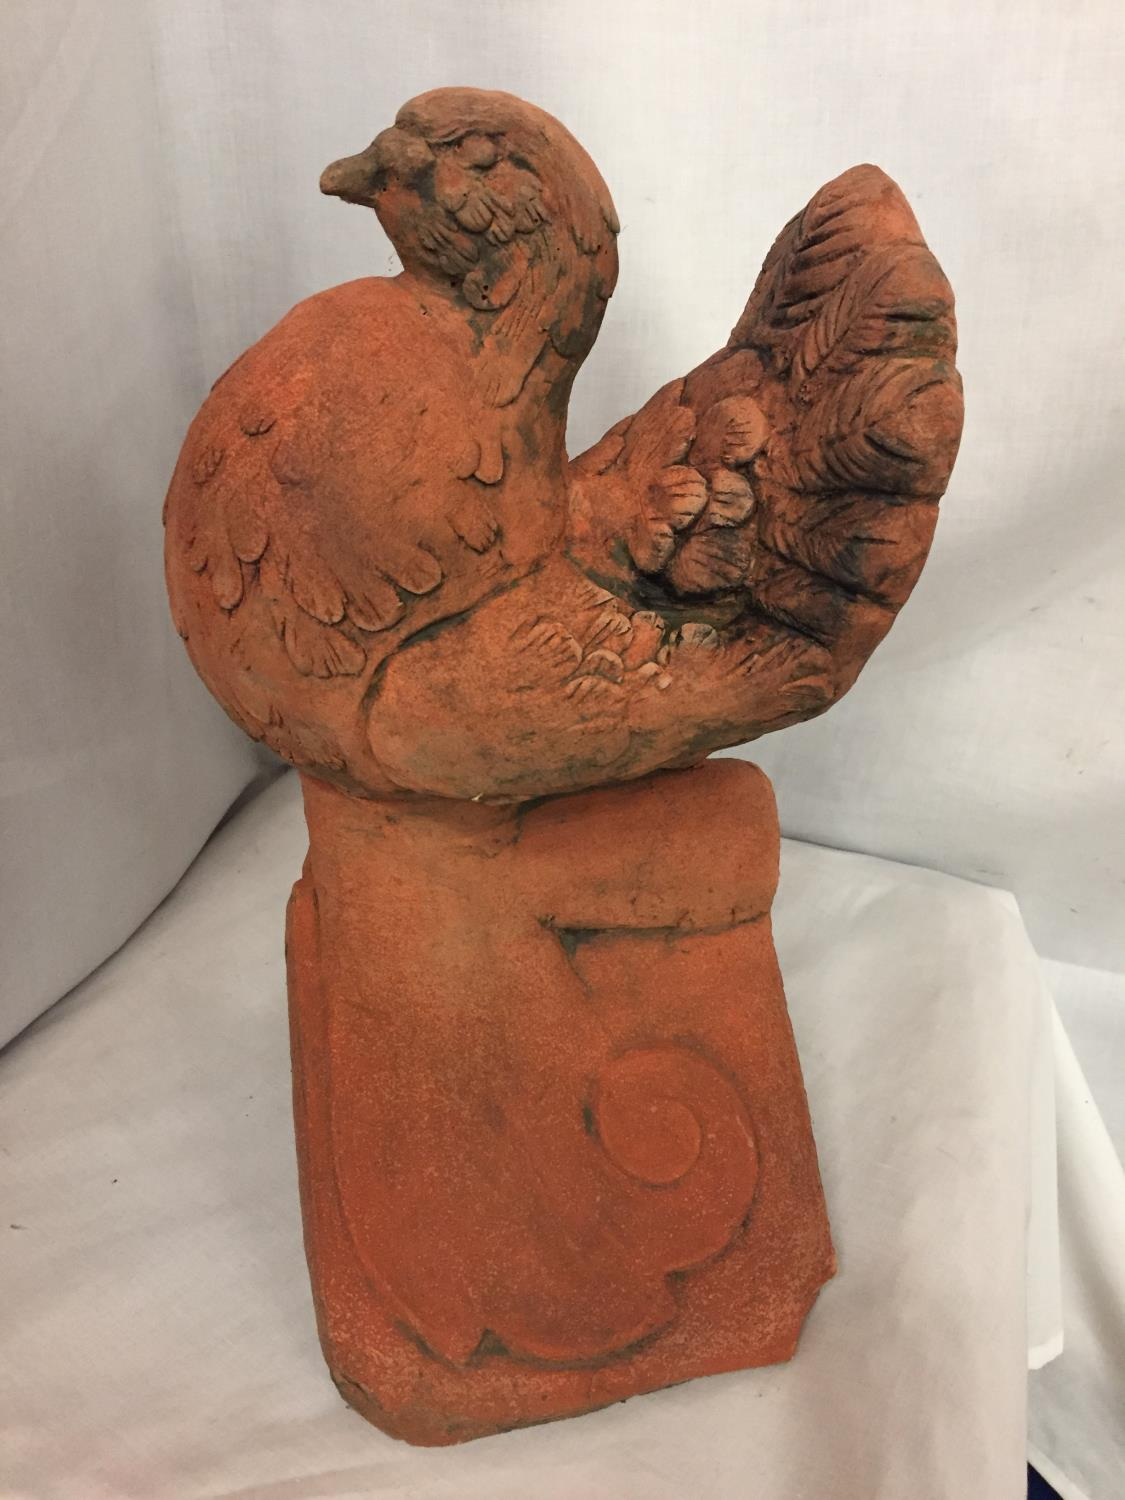 A TERRACOTTA ROOF TILE FINIAL OF A DOVE - Image 2 of 4